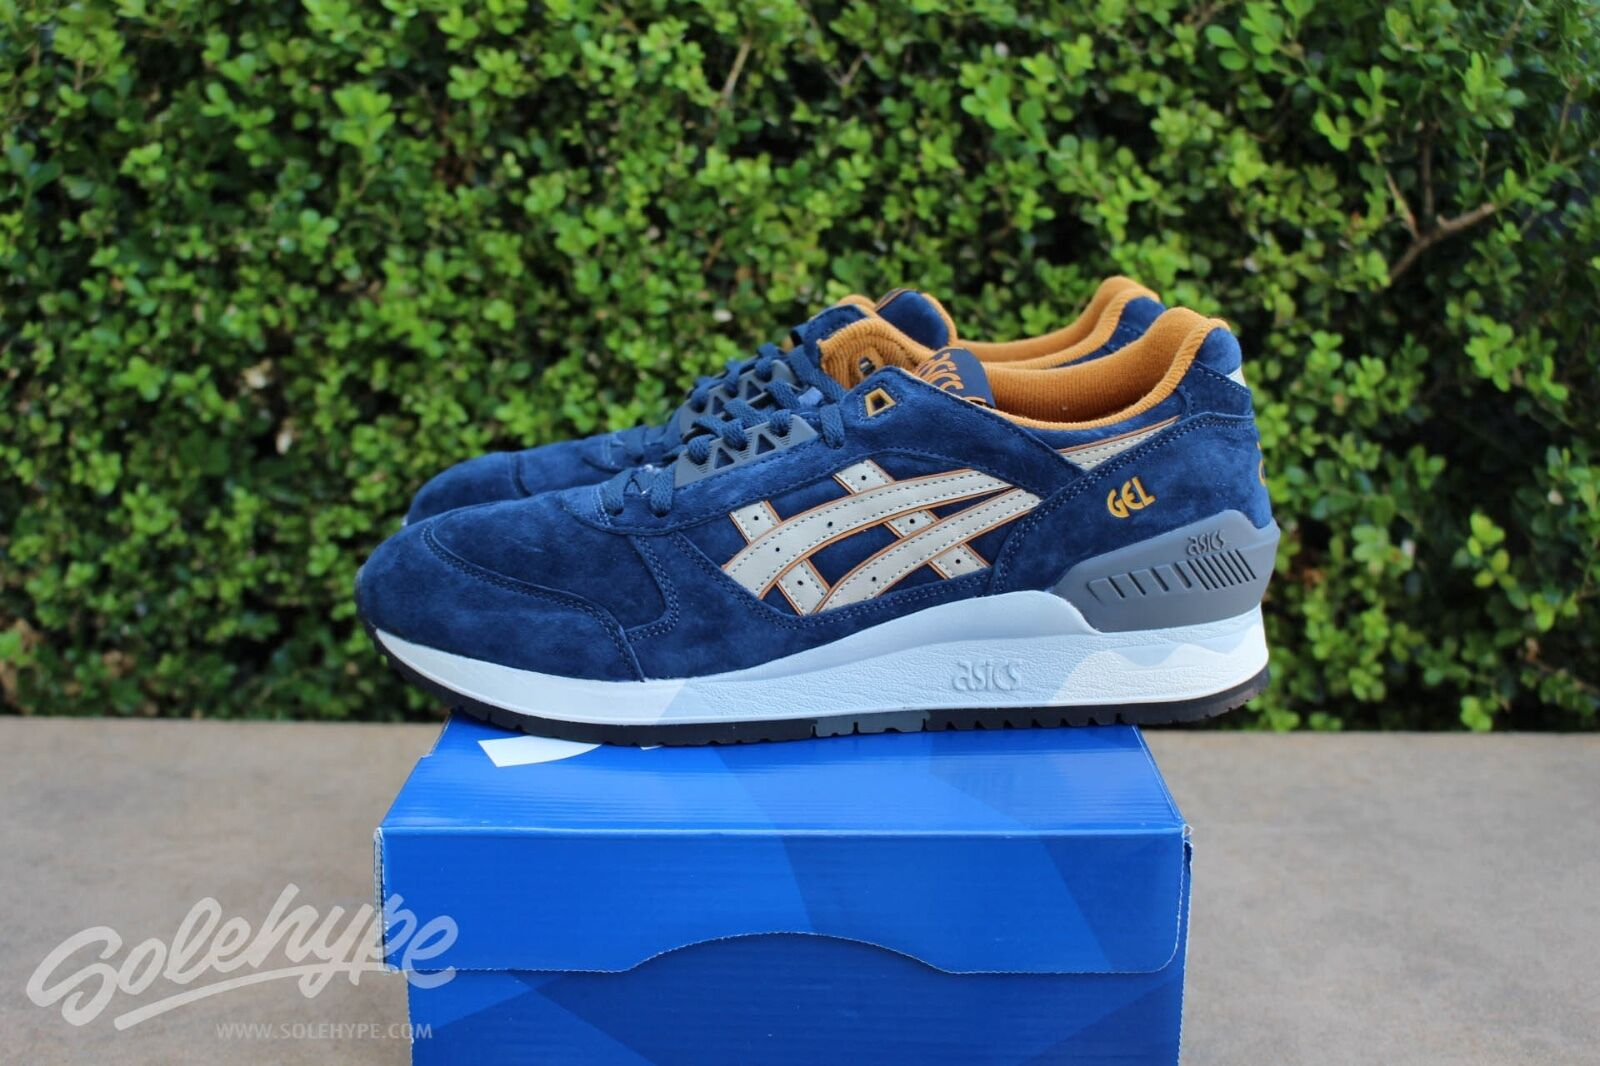 ASICS GEL RESPECTOR SZ 7 PREMIUM CASUAL PACK NAVY SAND H5X2L 5005